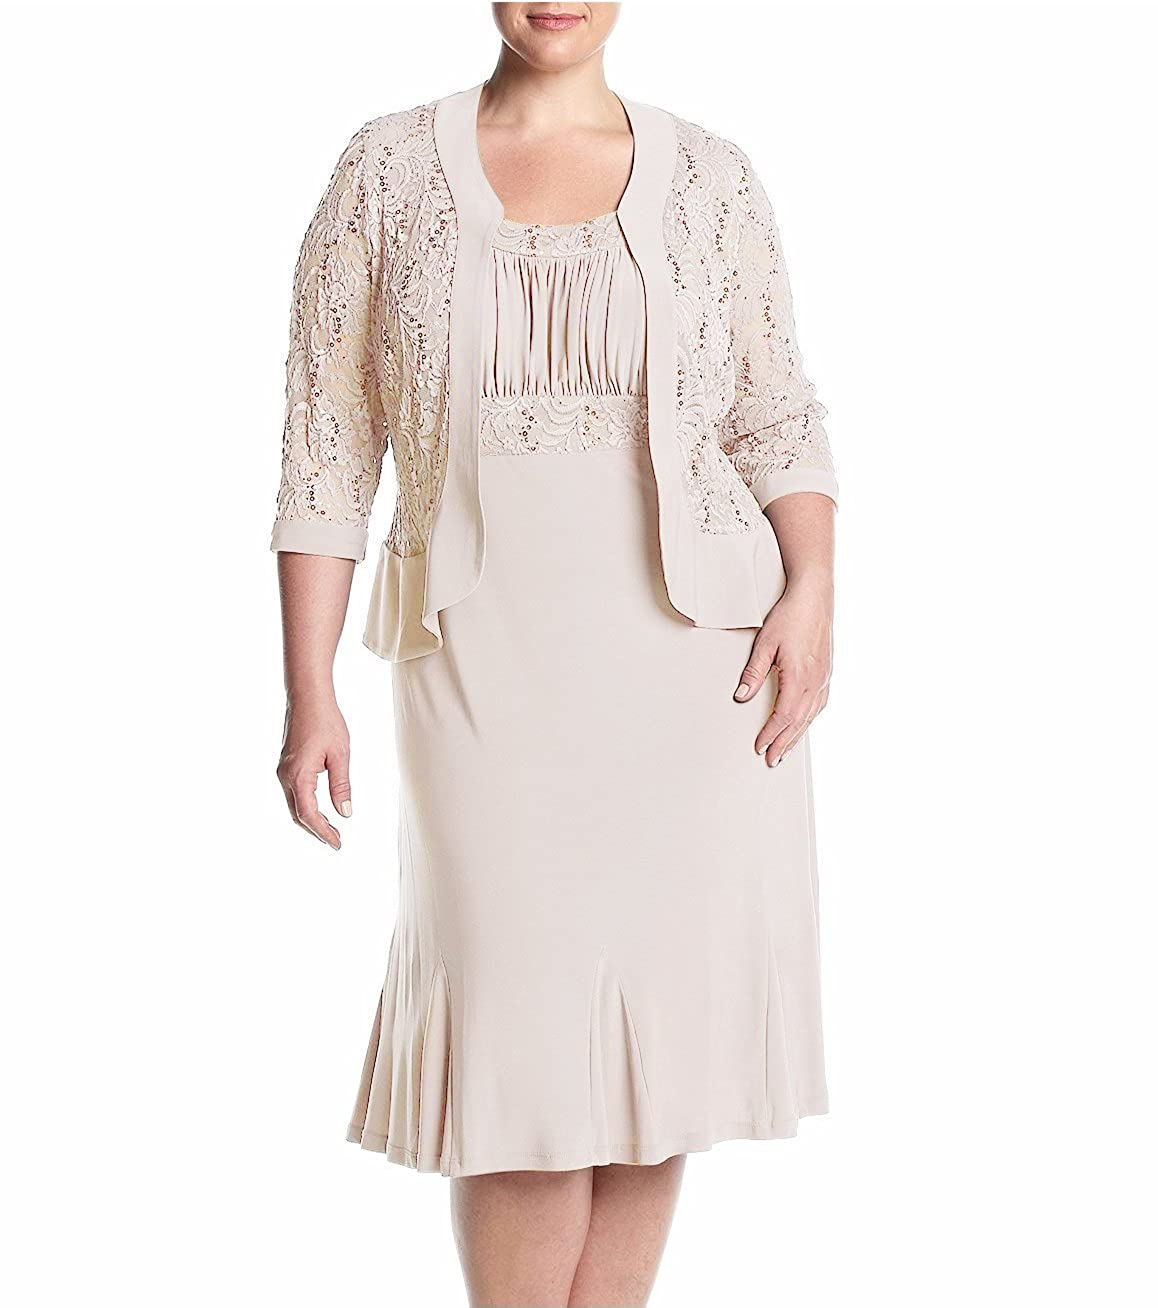 1930s Style Wedding Dresses | Art Deco Wedding Dress R&M Richards RM Richards Womens Plus Size Ruffled Trim Lace Jacket Mother Of The Bride Dress $99.99 AT vintagedancer.com